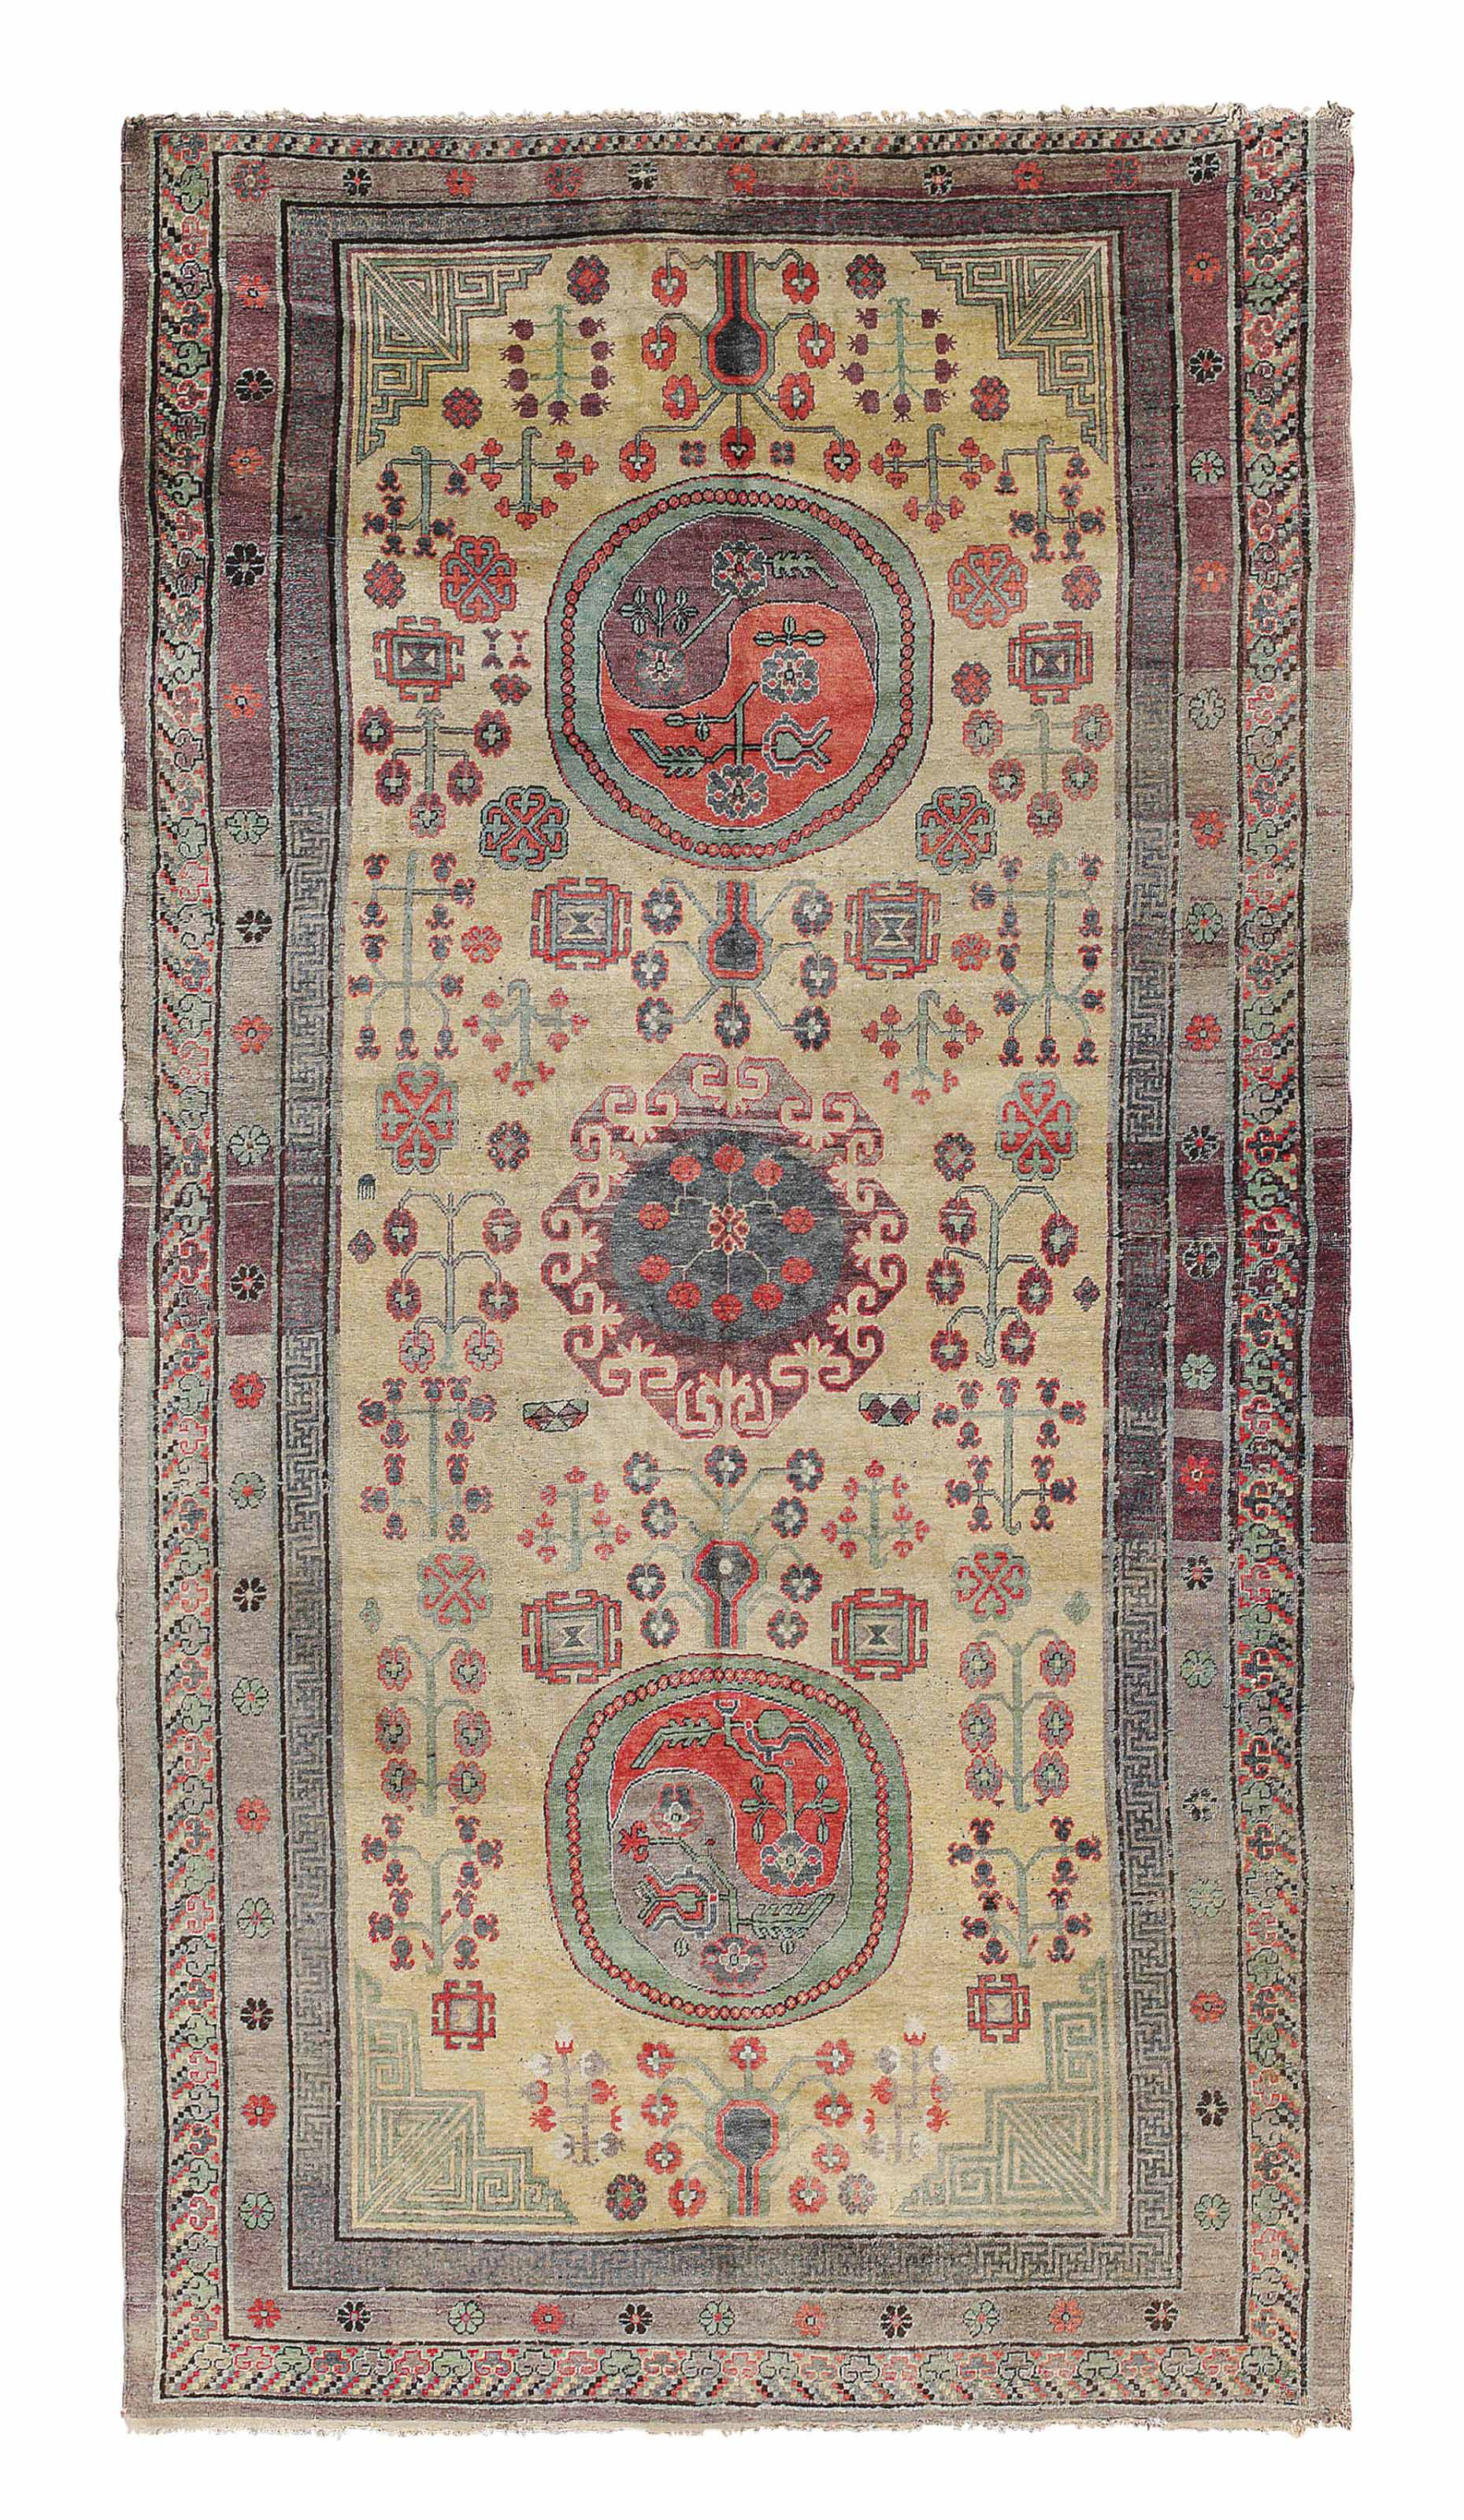 A KHOTAN CARPET, EAST TURKESTA